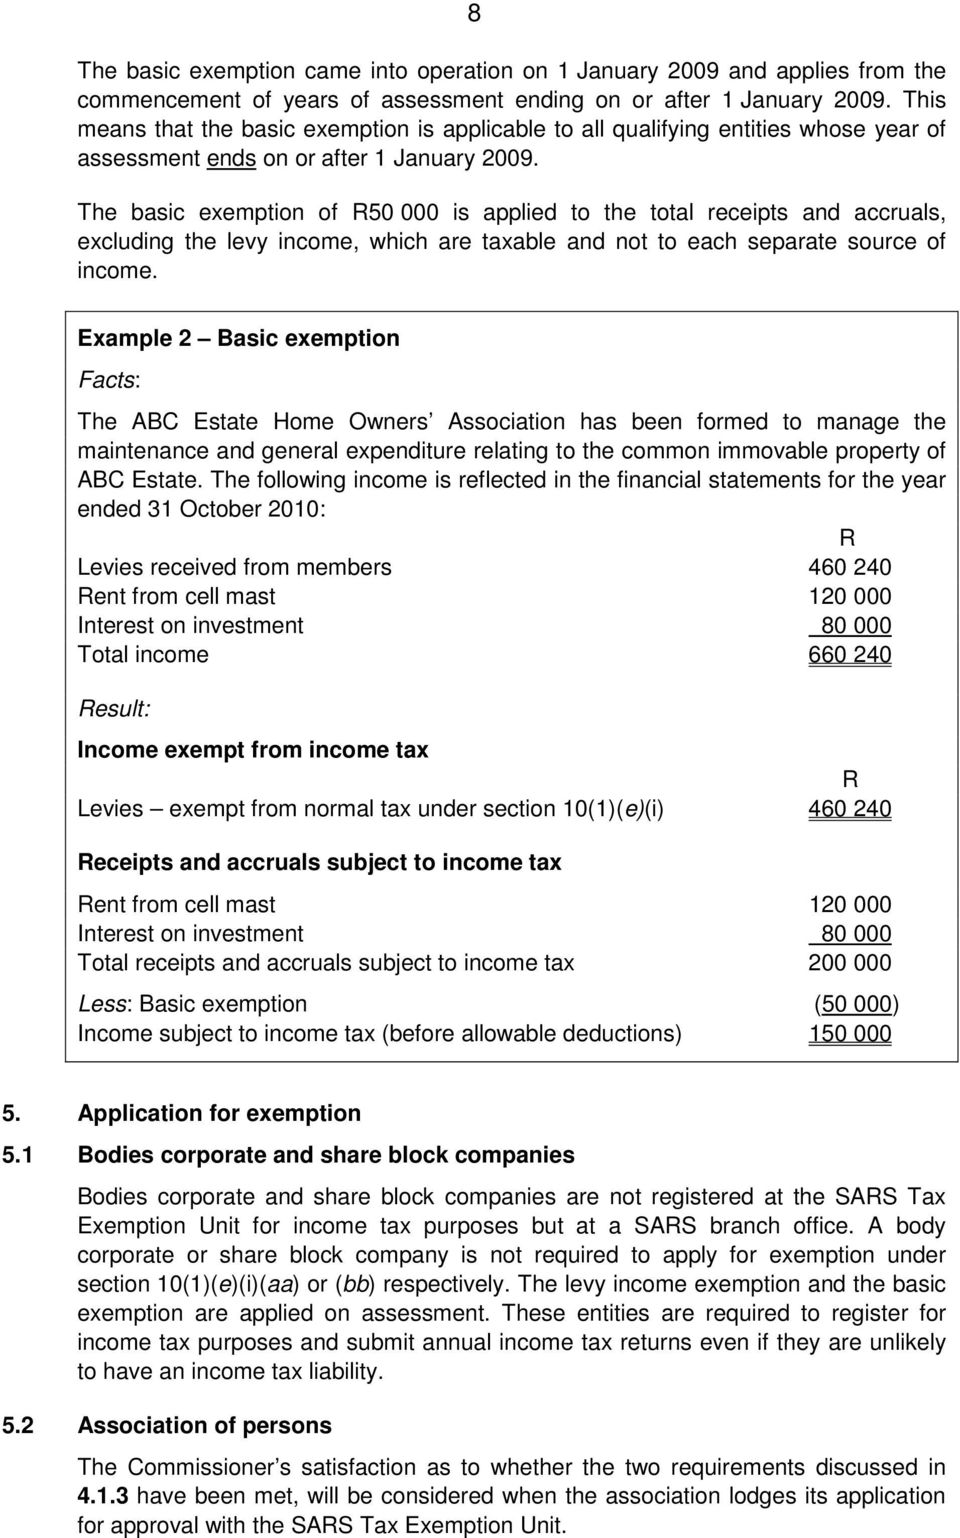 The basic exemption of R50 000 is applied to the total receipts and accruals, excluding the levy income, which are taxable and not to each separate source of income.